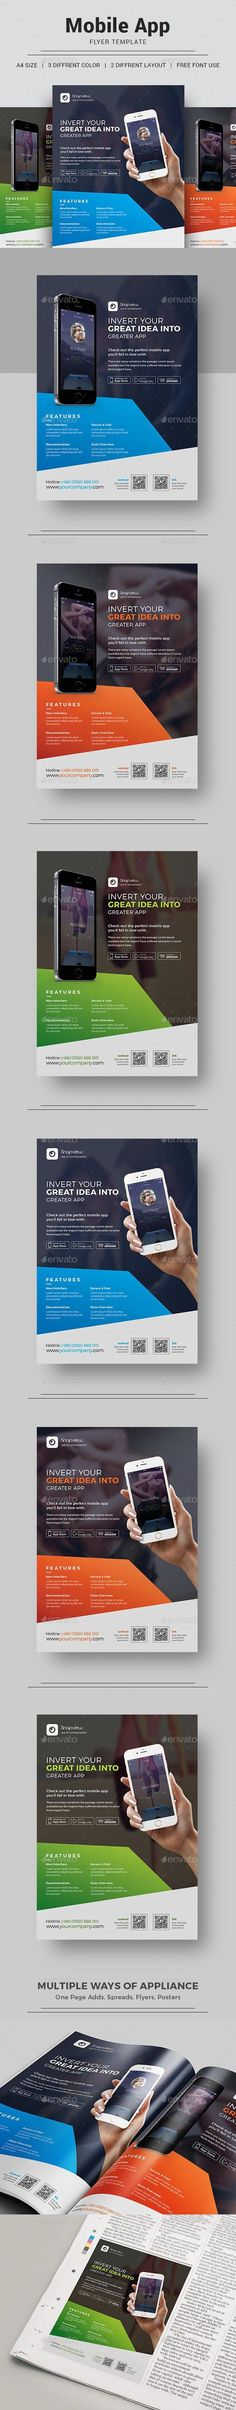 Buy Mobile App Promotion Flyer by themedevisers on GraphicRiver. Mobile App Promotion Flyer Template, is perfectly suitable for promoting your mobile application, android app, ios ap. Ios App Design, Flyer Design, App Icon Generator, App Promotion, Ios App Icon, Flyer Printing, Layout, Business Flyer Templates, Mobile App